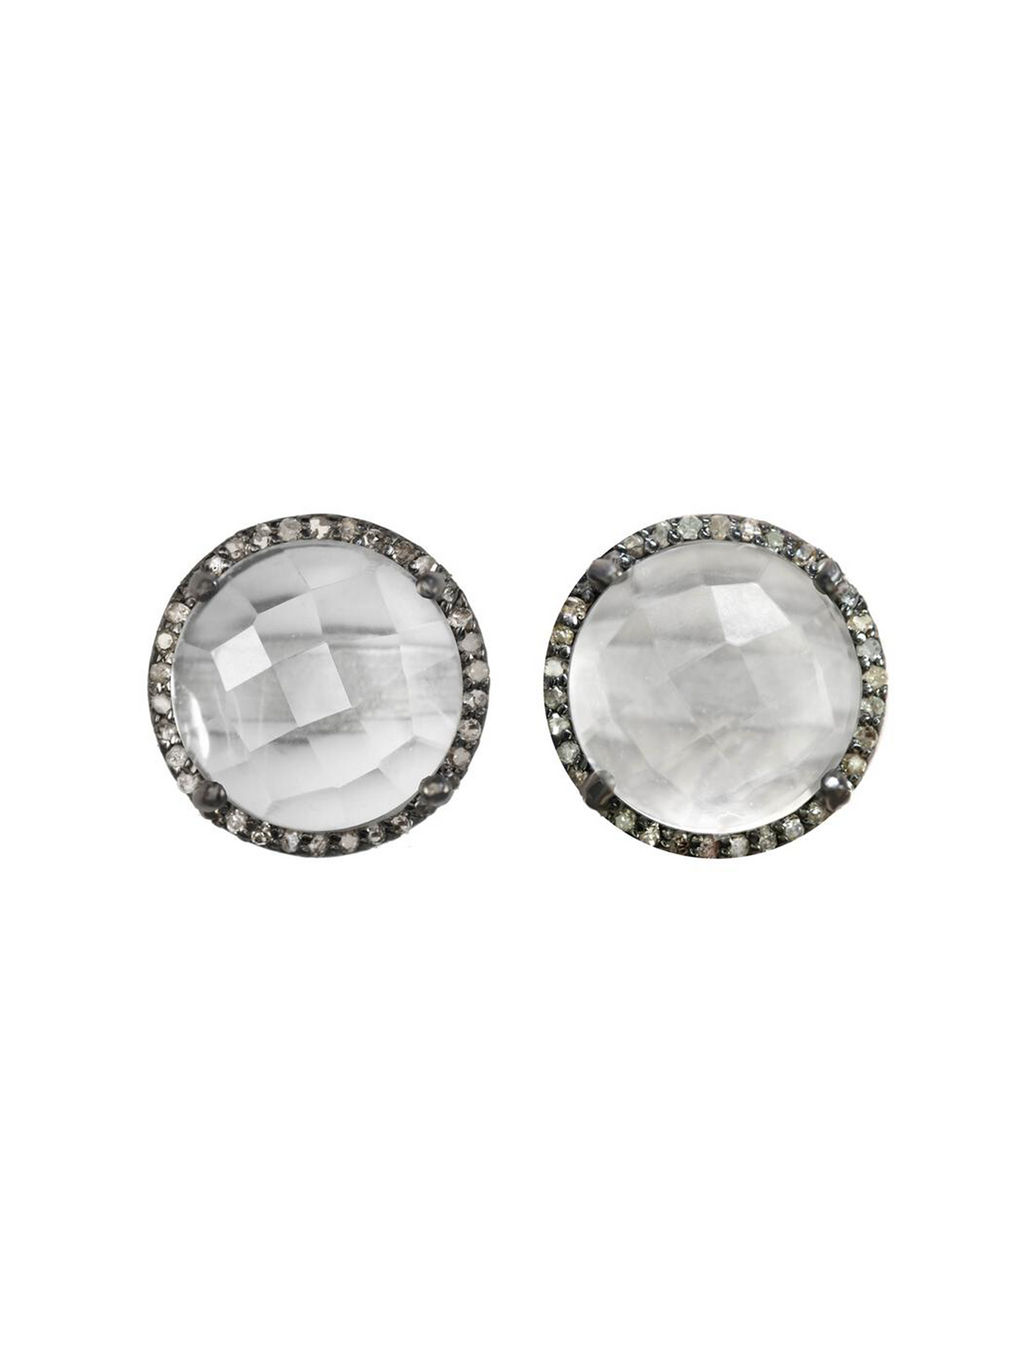 Margo Morrison Faceted Crystal Quartz and Diamond Stud Earrings